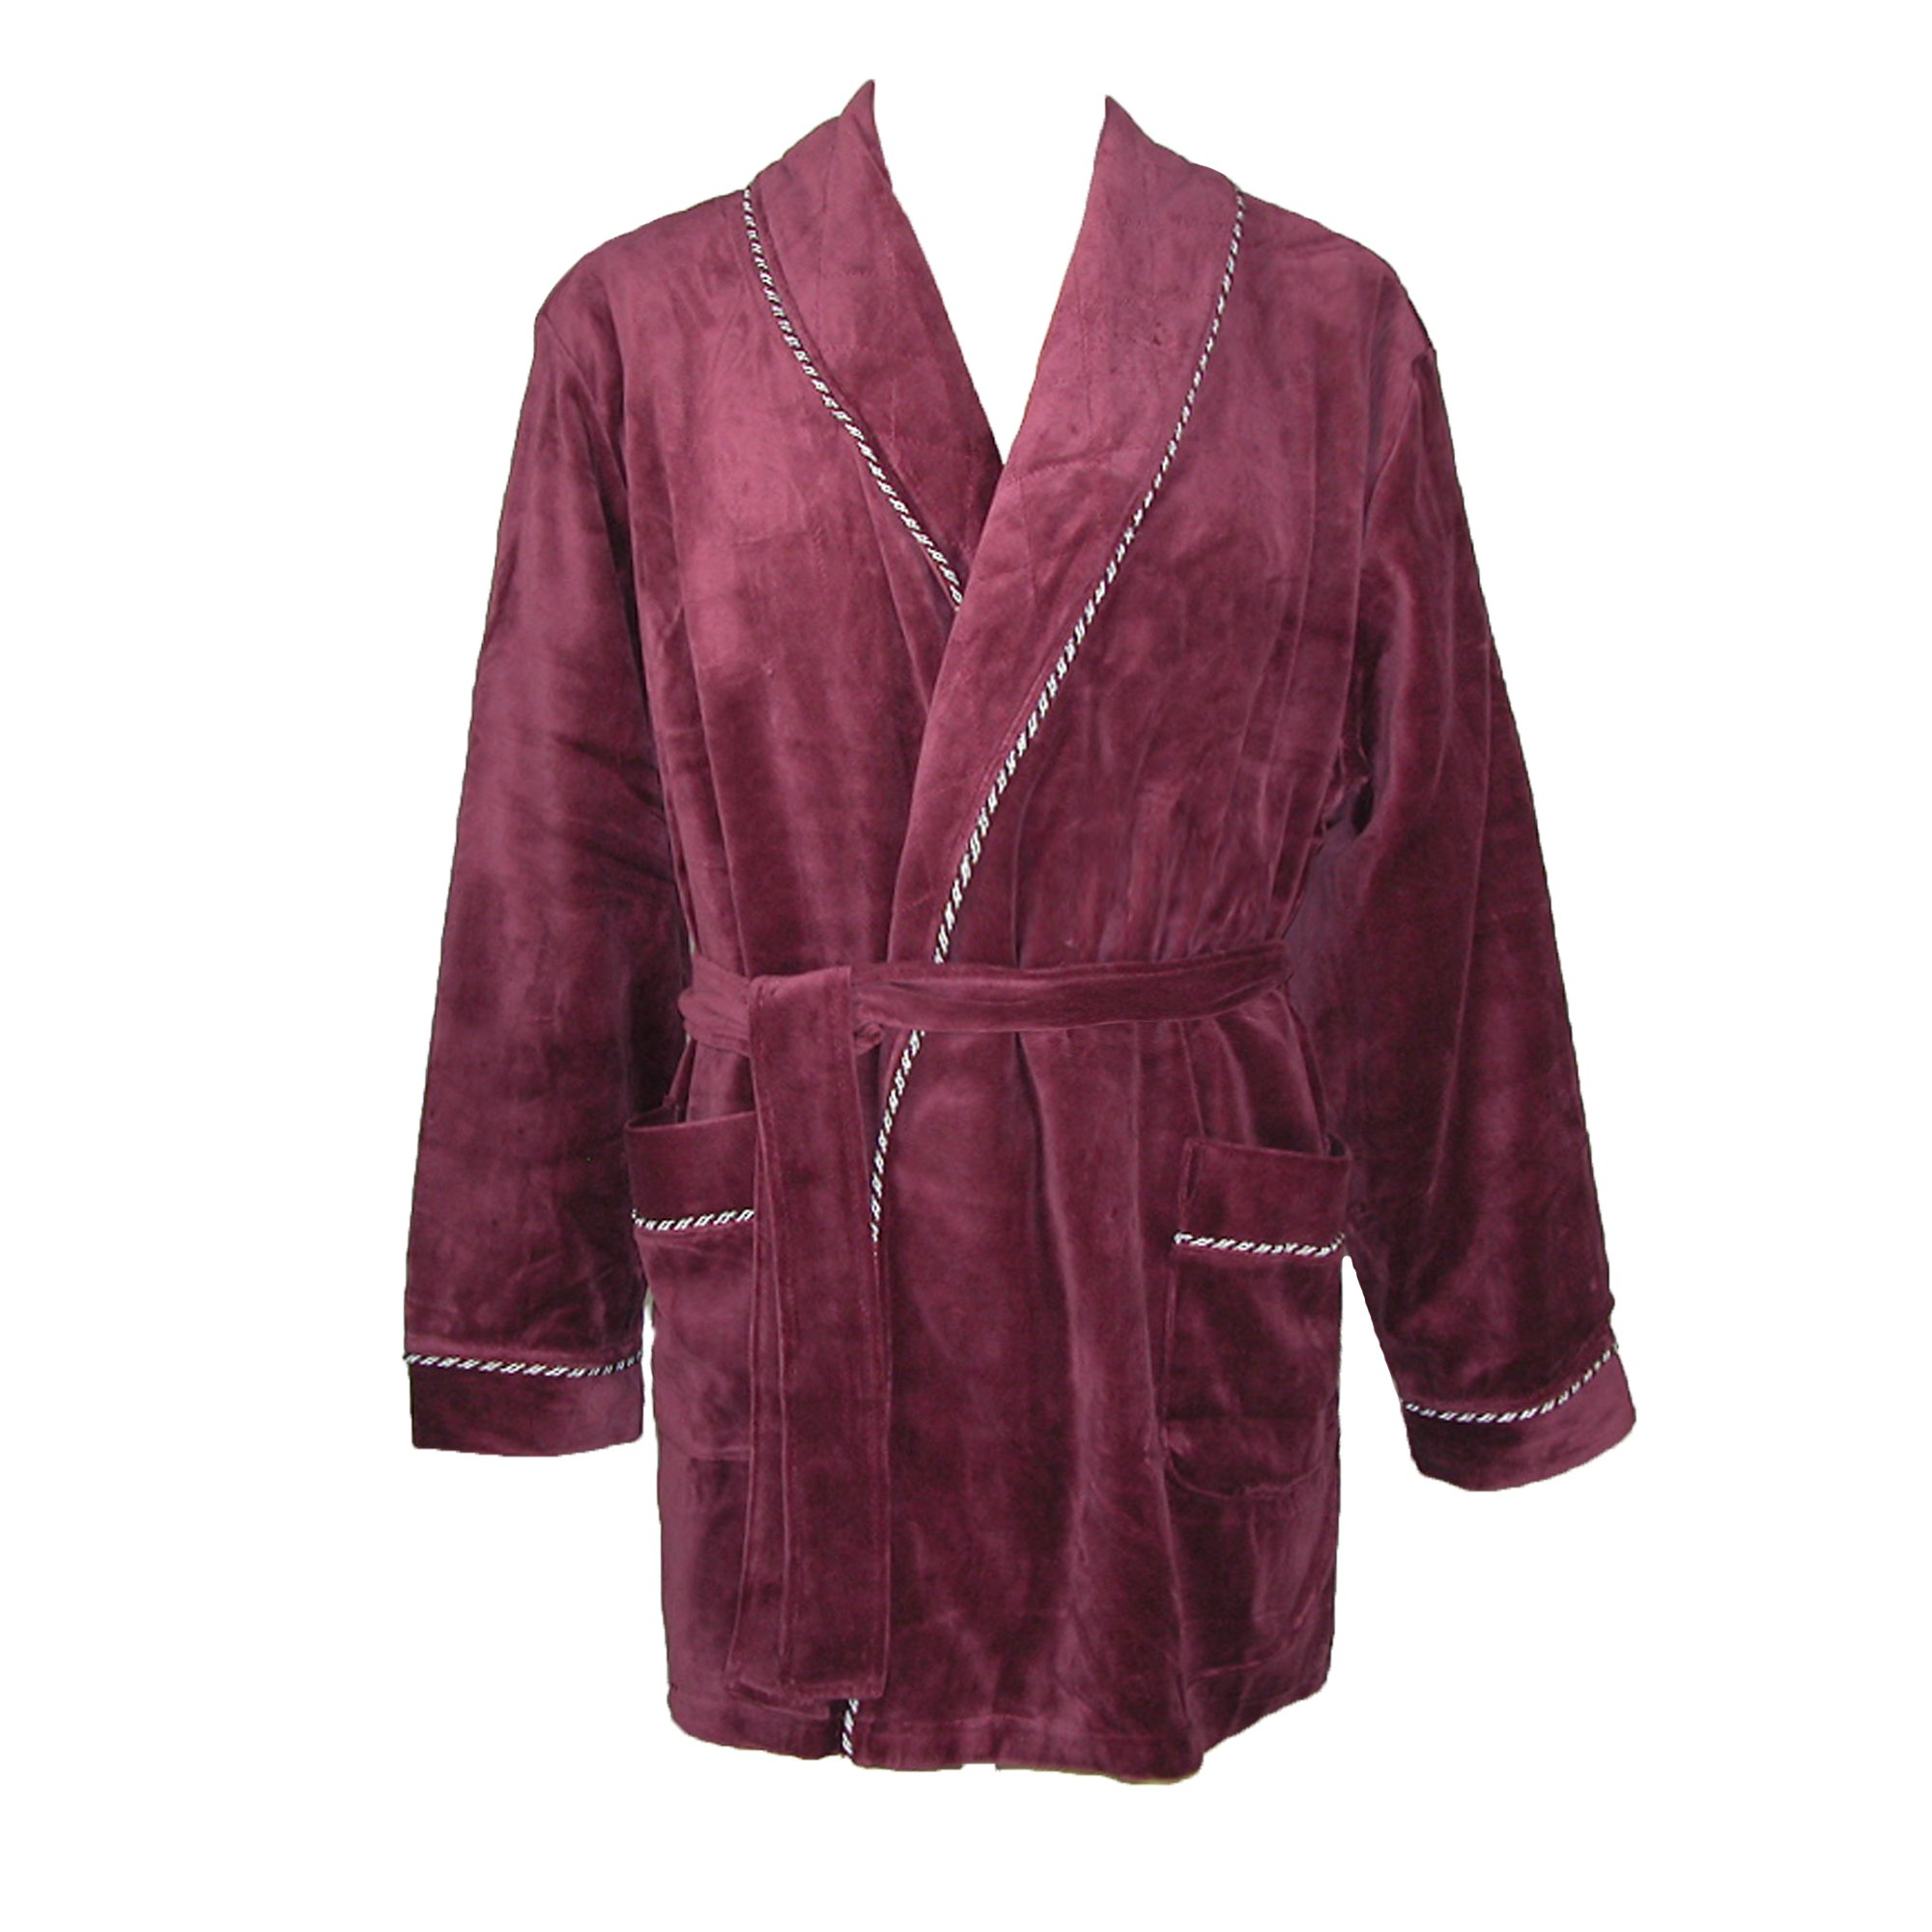 Majestic International Men's Satin Lined Smoking Jacket, Small / Medium, Merlot by Majestic International